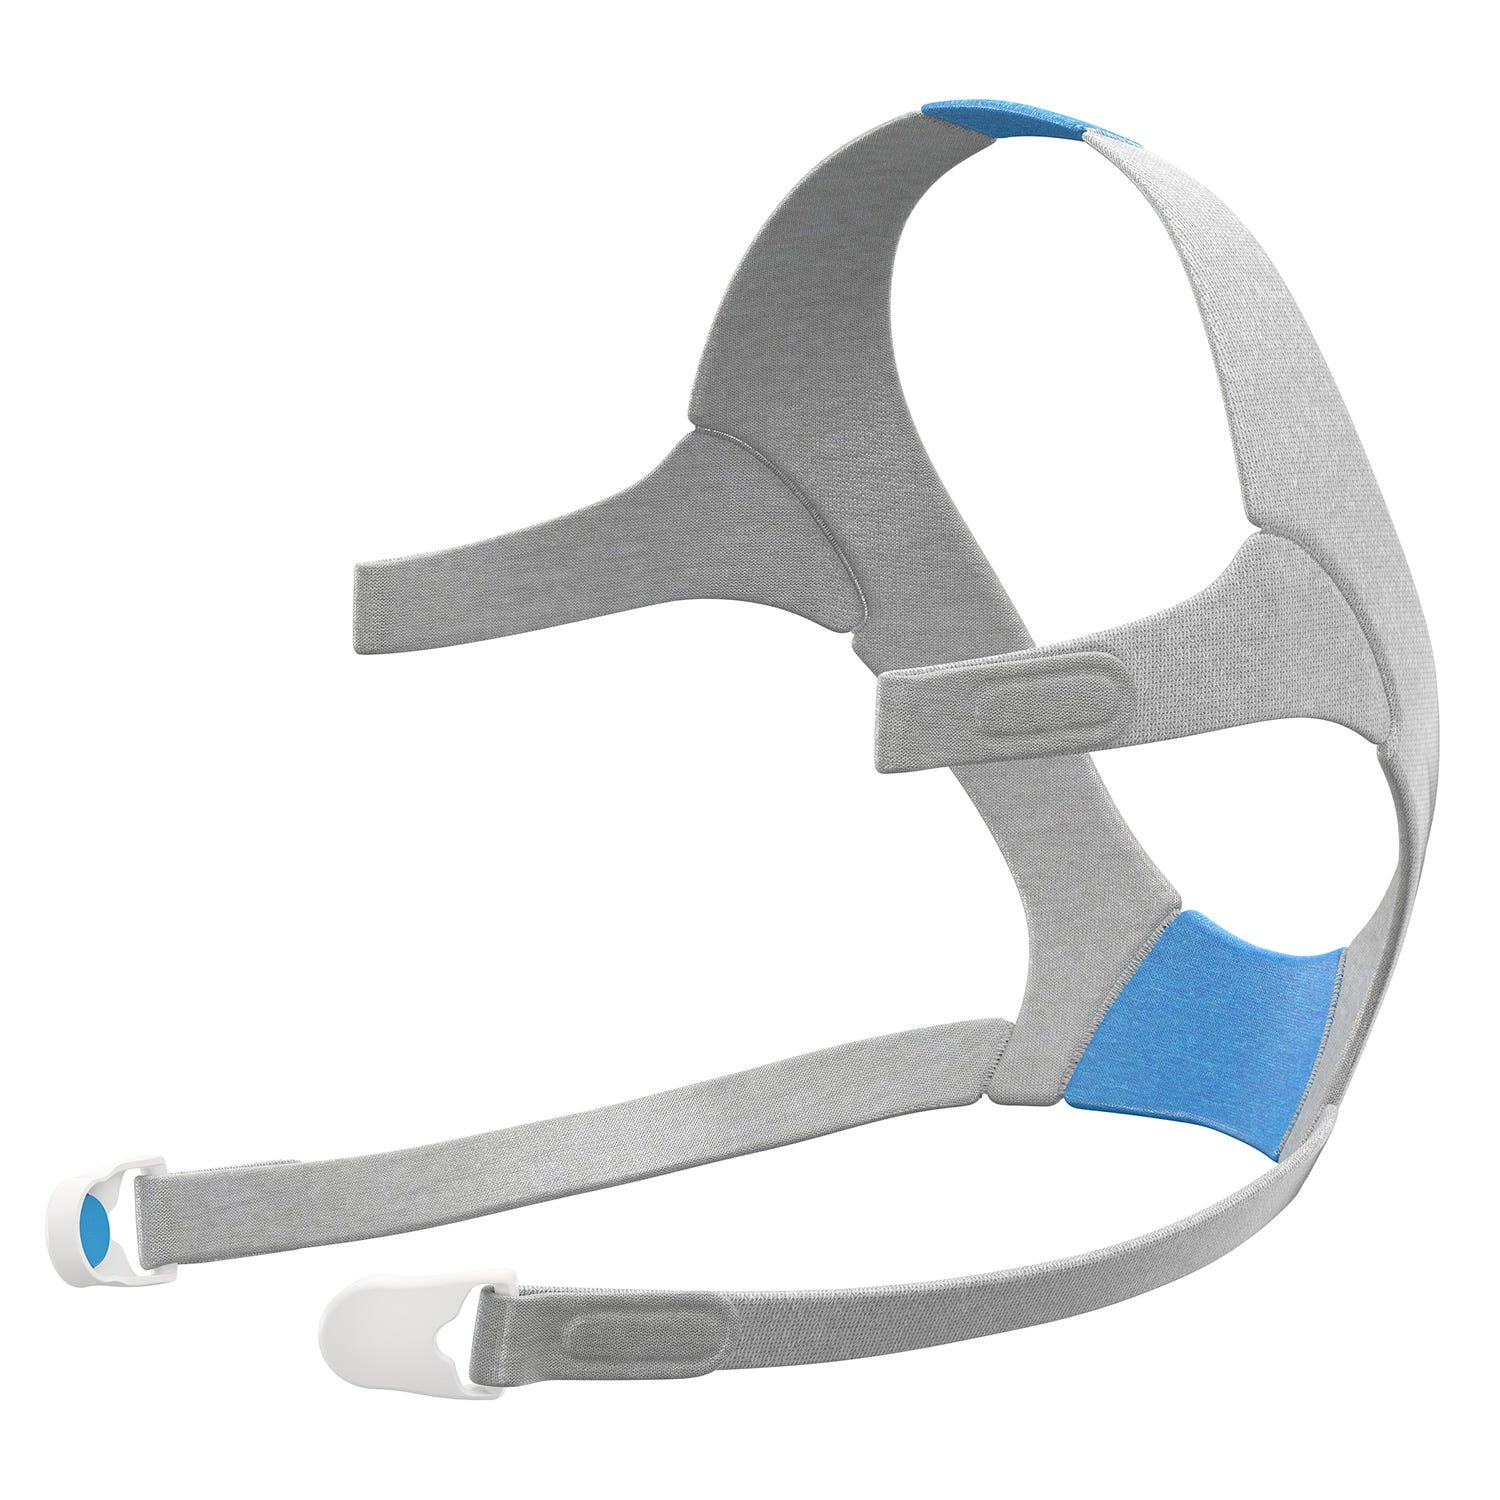 ResMed AirFit/AirTouch F20 Headgear with Headgear clips